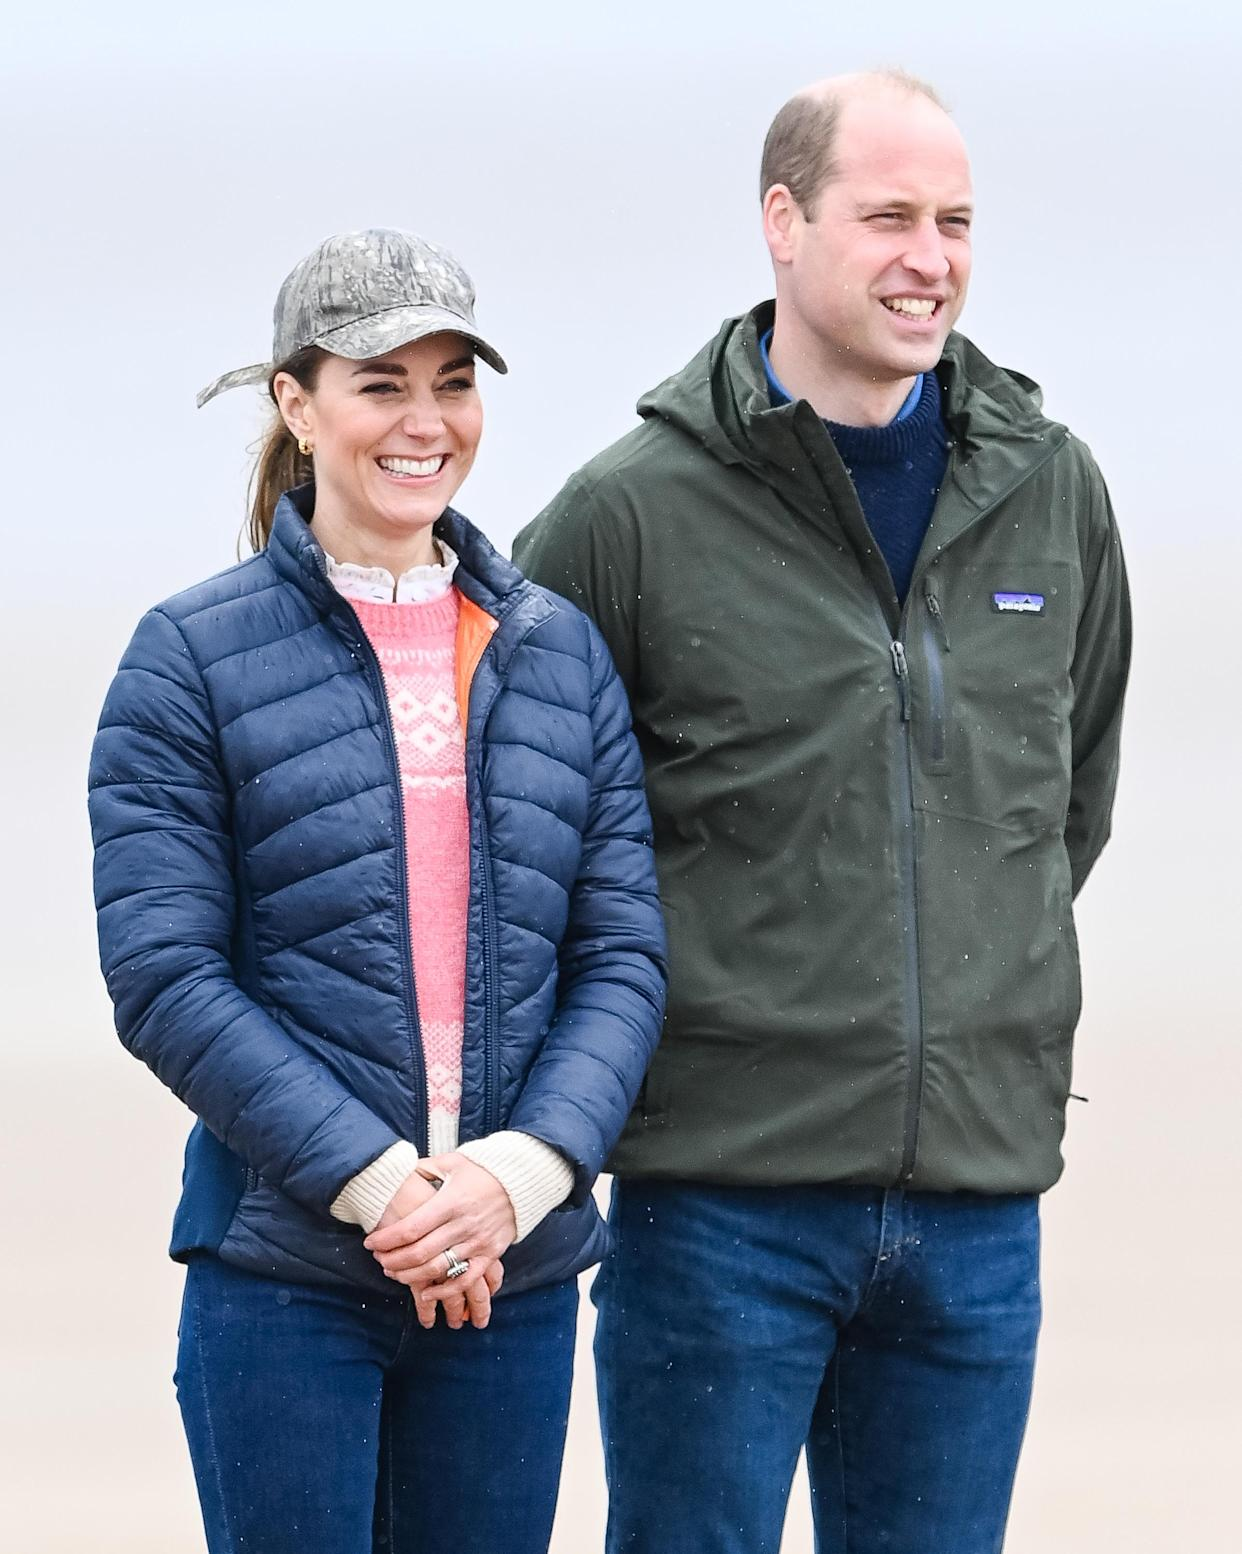 ST ANDREWS, SCOTLAND - MAY 26: Prince William and Catherine Duchess of Cambridge join Fife Young Carers for a session of land yachting on West Sands beach at St Andrews, hosted by local company Blown Away on May 26, 2021 in St Andrews, Scotland. (Photo by Pool/Samir Hussein/WireImage)